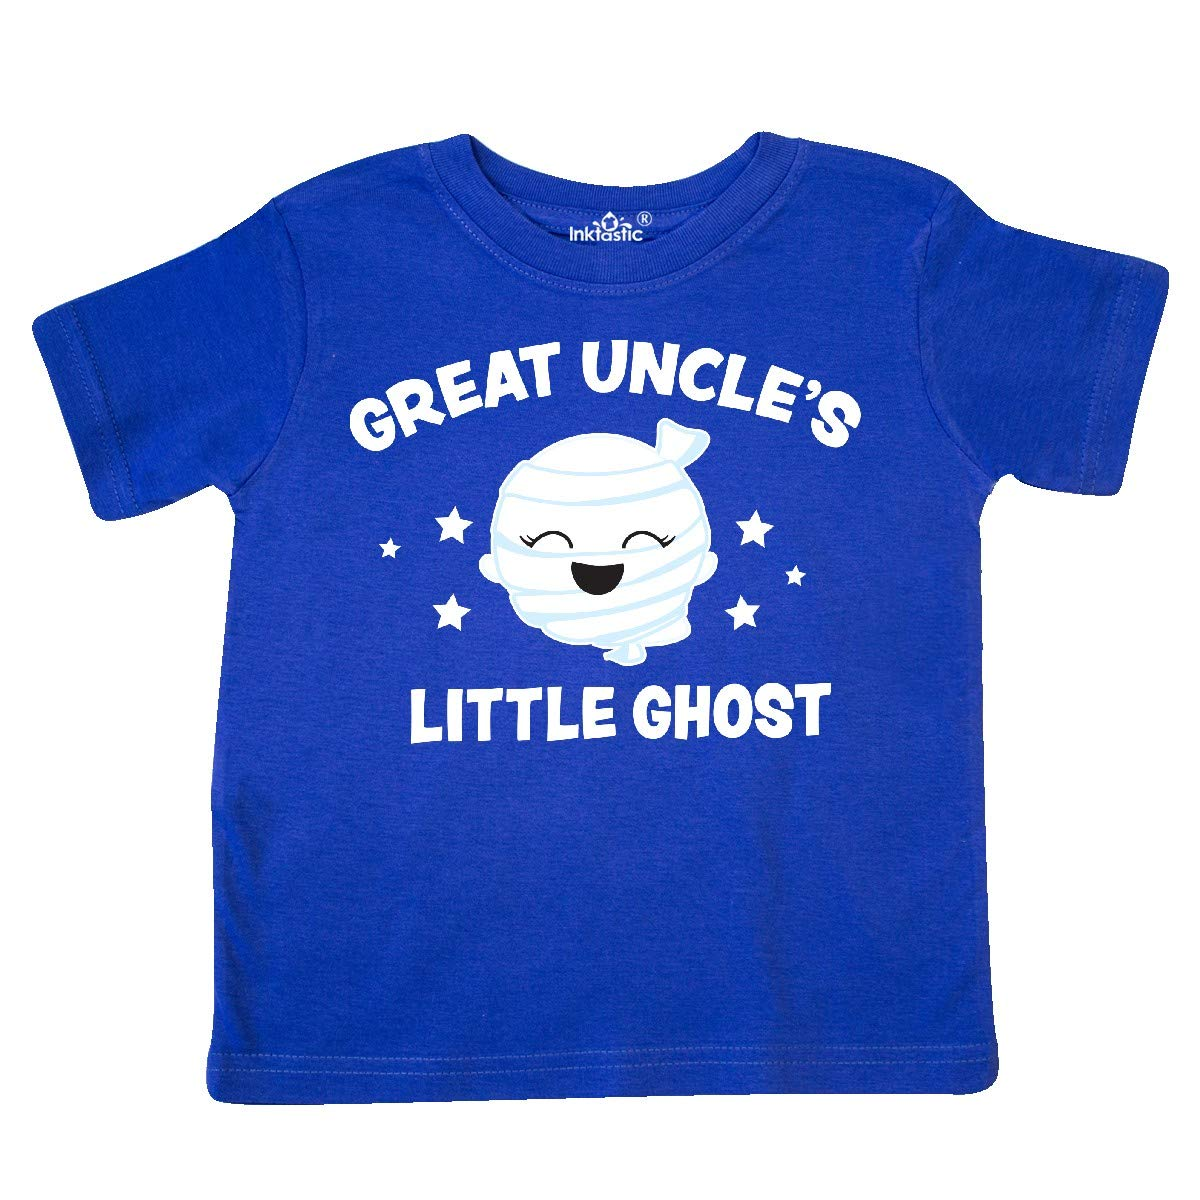 inktastic Cute Great Uncles Little Ghost with Stars Toddler T-Shirt